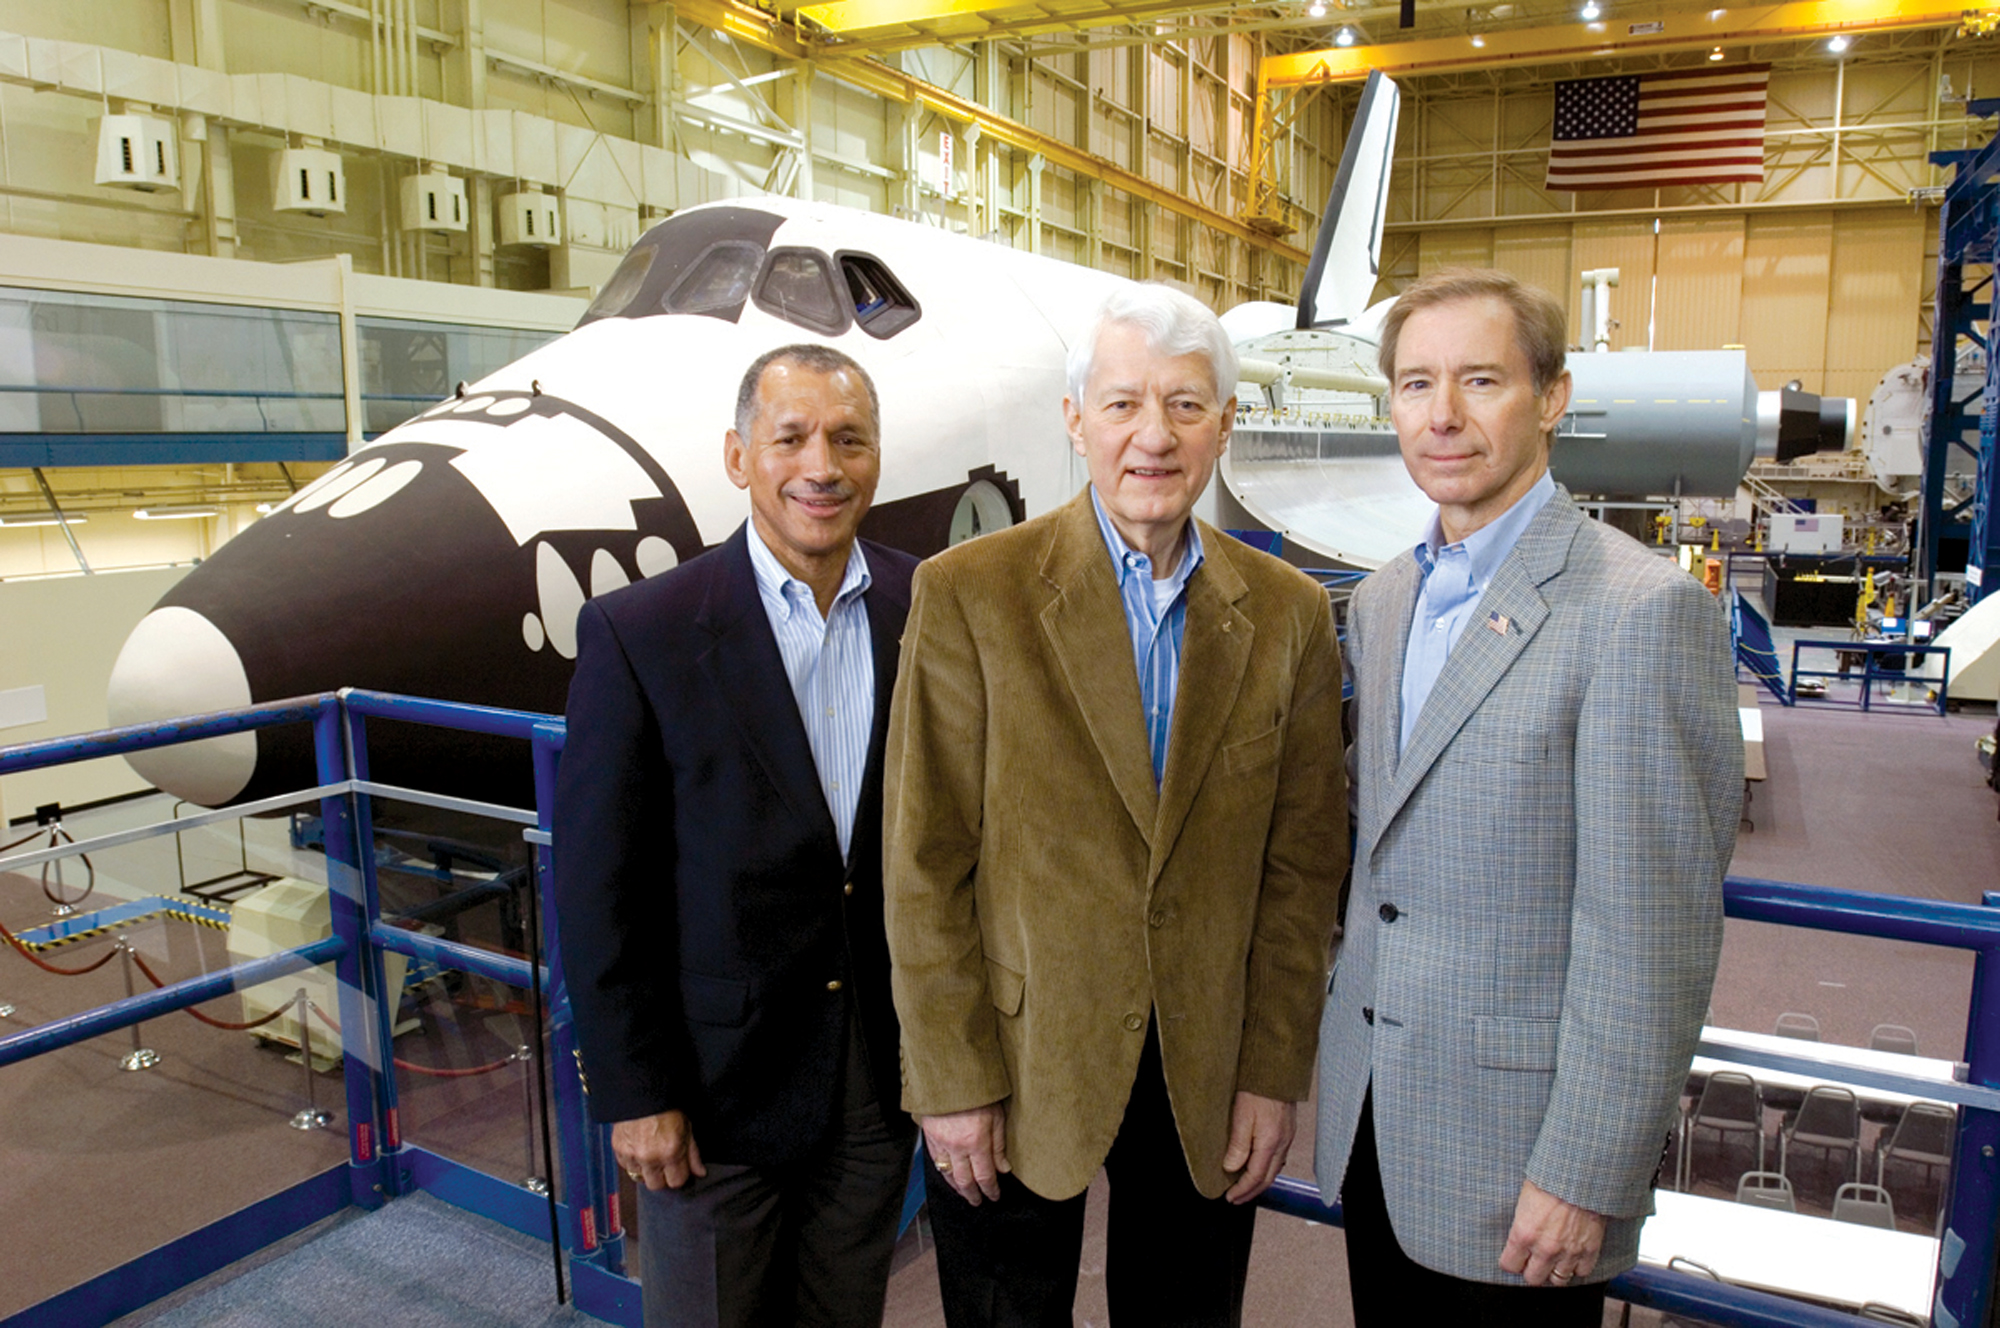 Three Space Shuttle Astronauts to be Inducted into Astronaut Hall of Fame